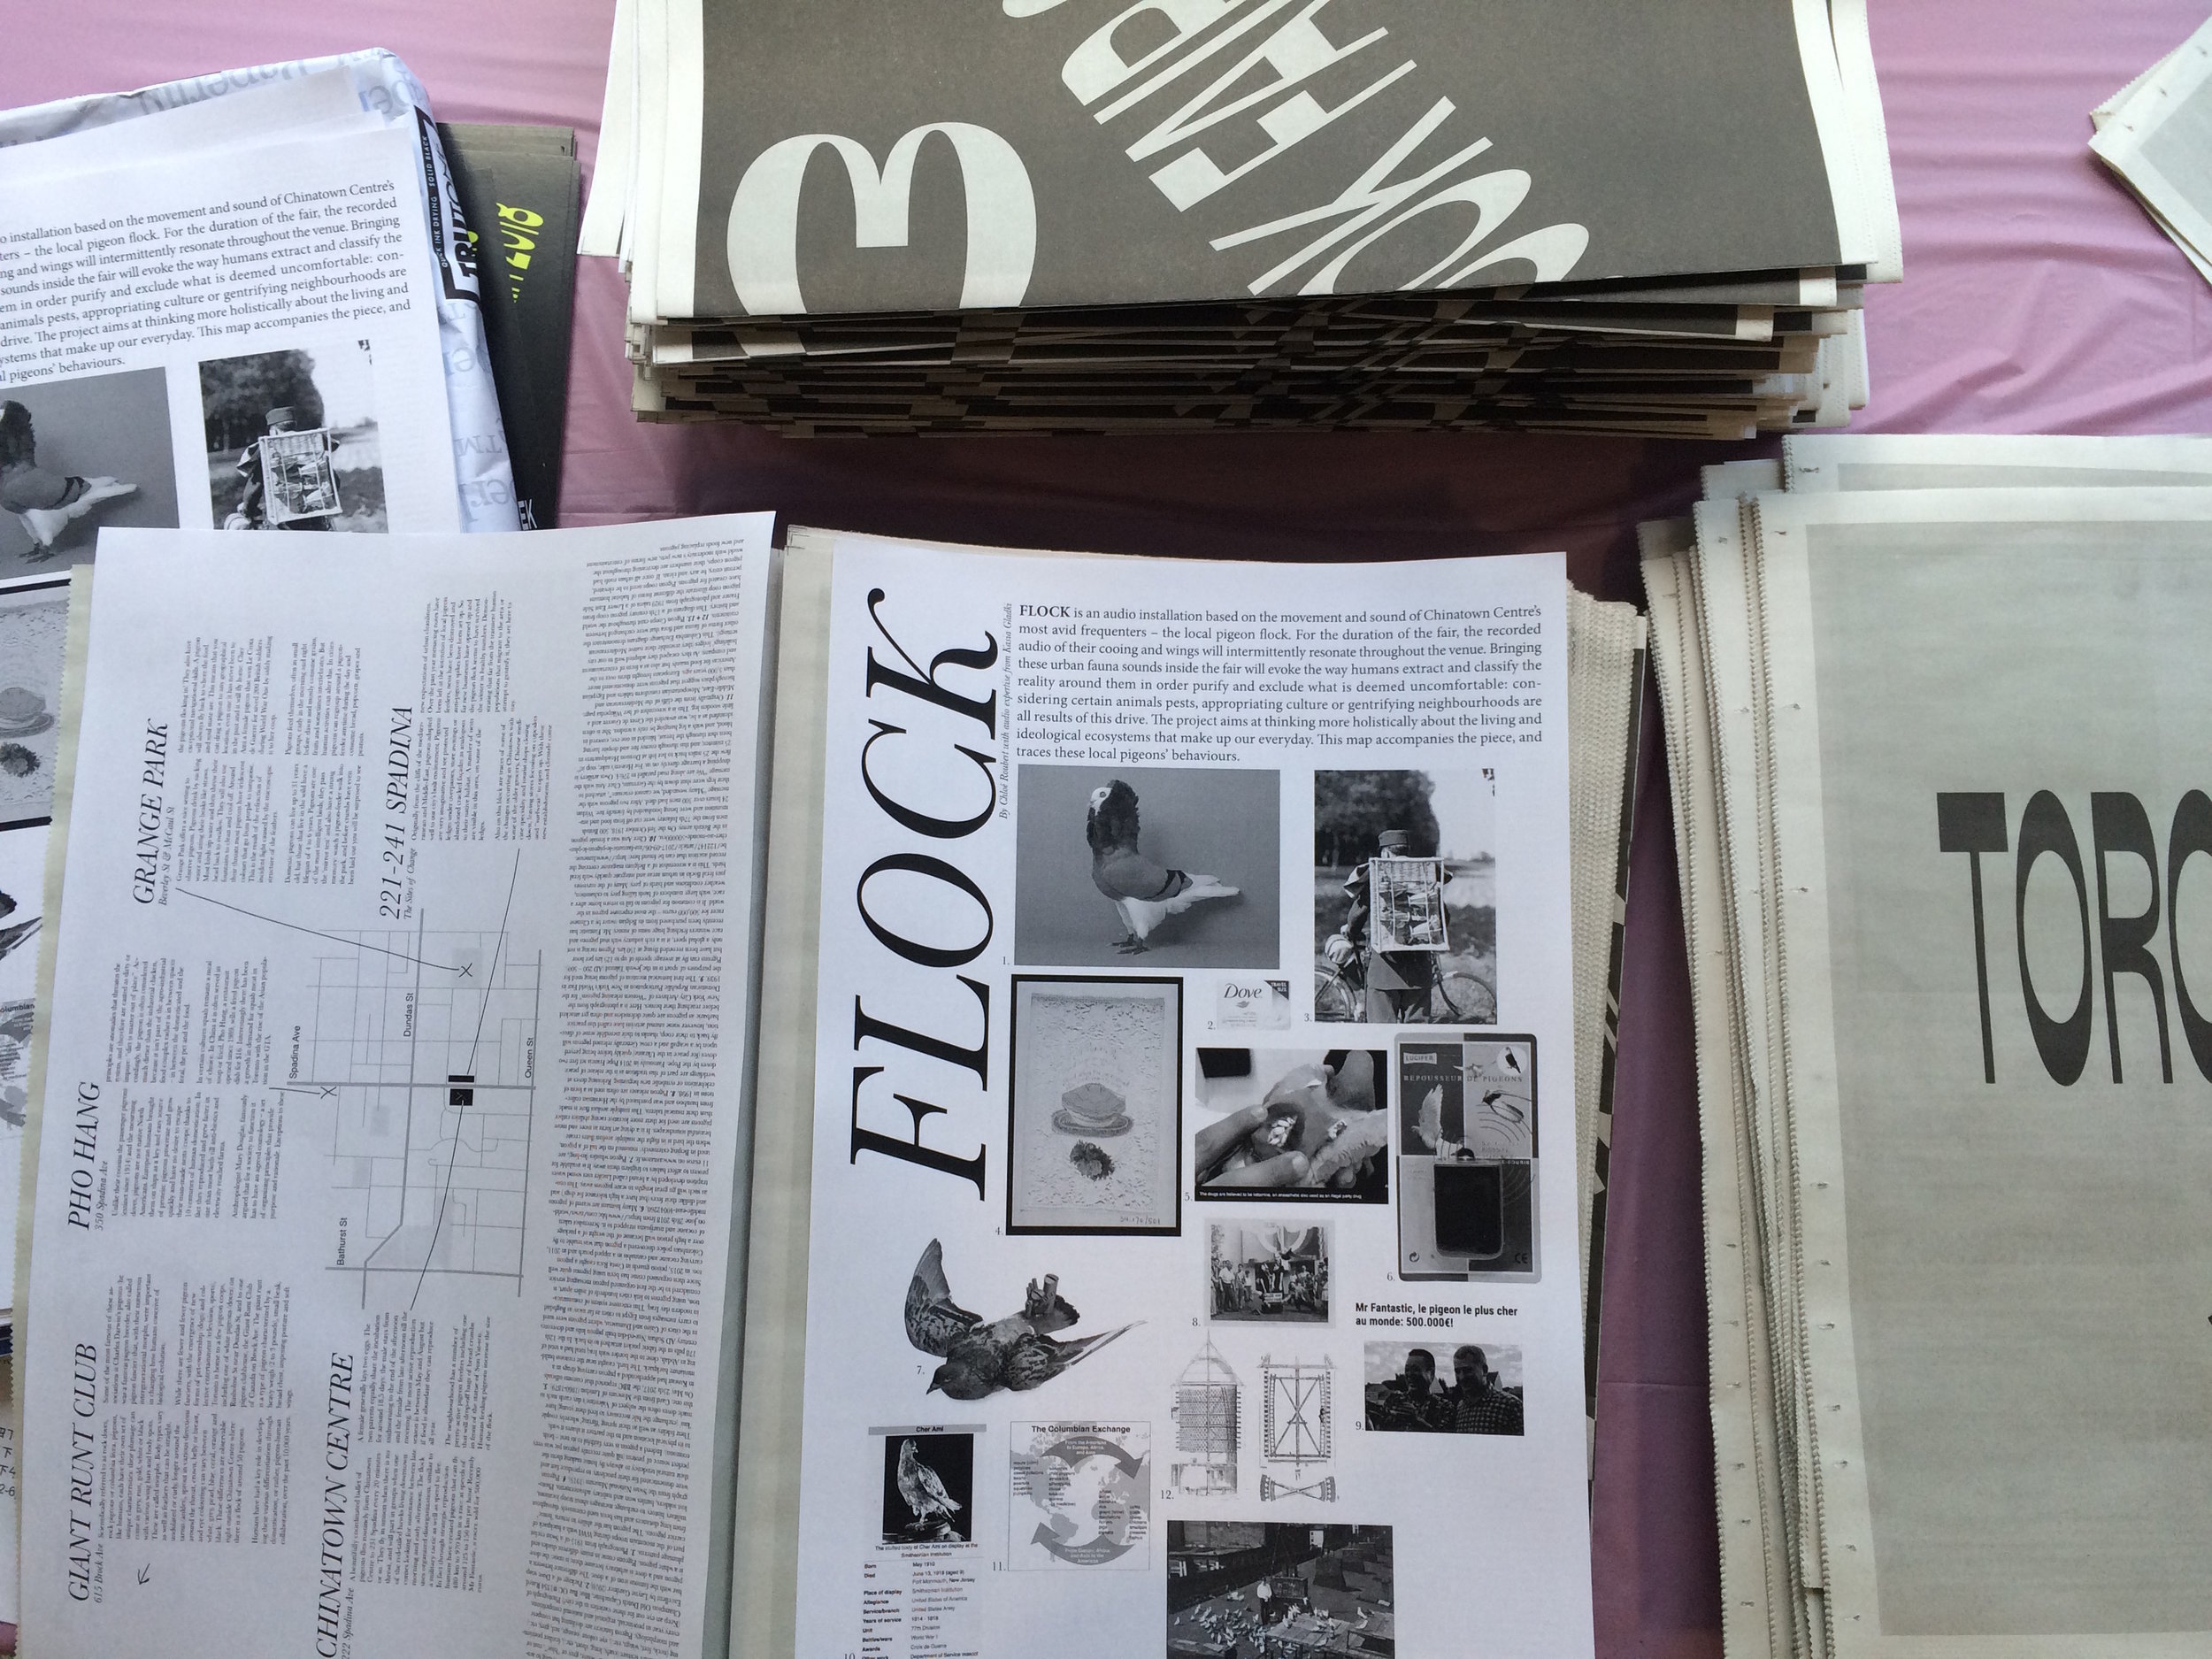 The leaflets with pigeon maps and contexts for the sound installation were placed in the Fair's free brochures.